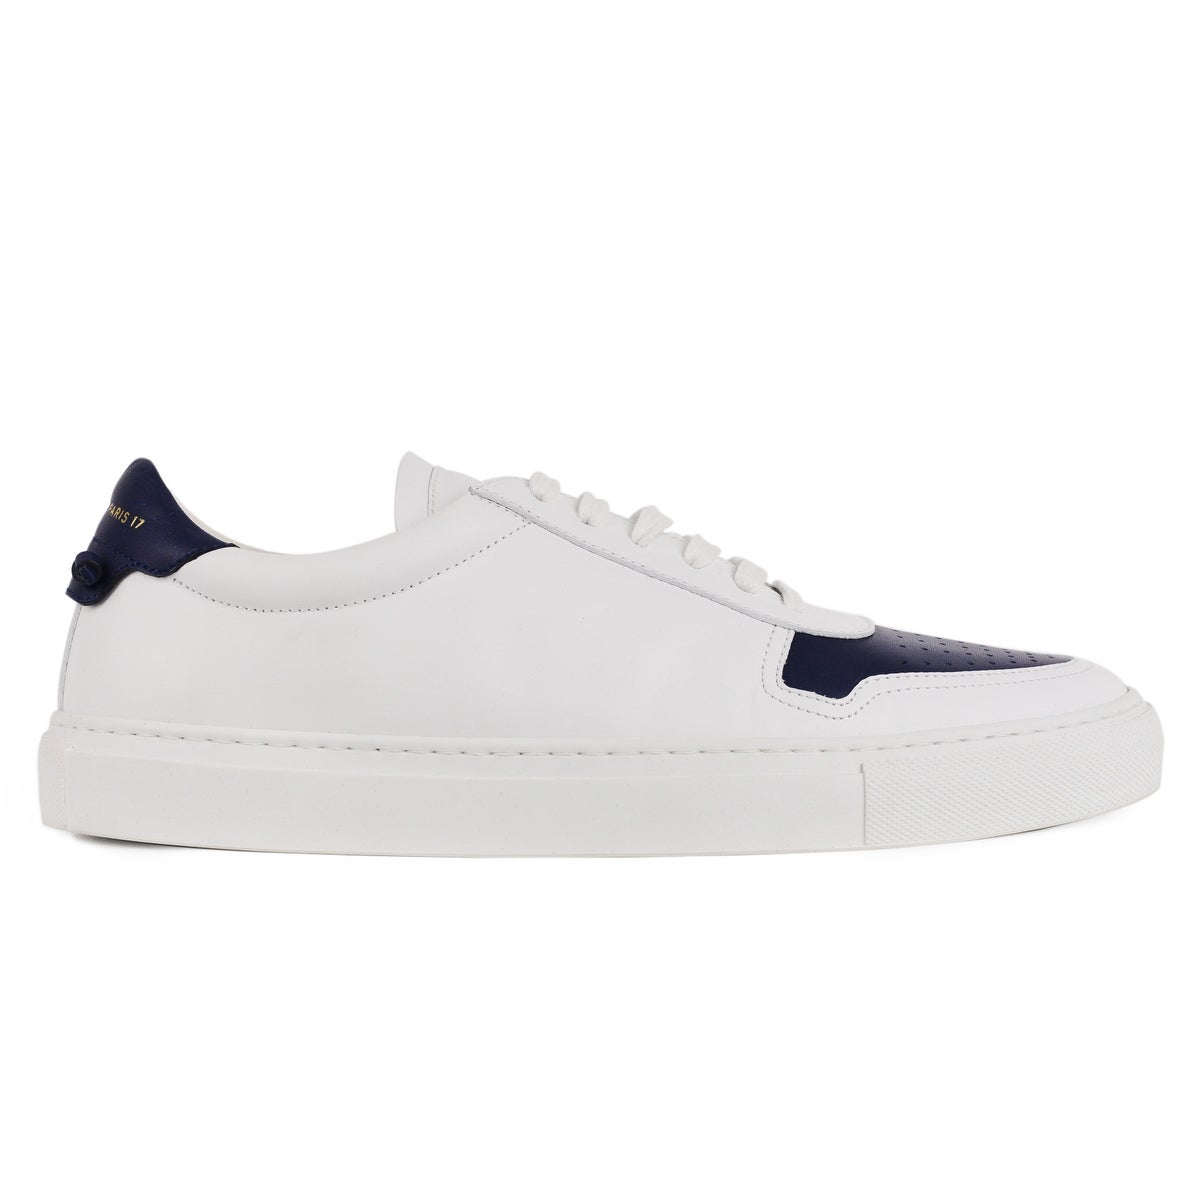 4fd897a0b37 Shop Givenchy Mens White Leather Navy Lace Up Sneakers - Free ...